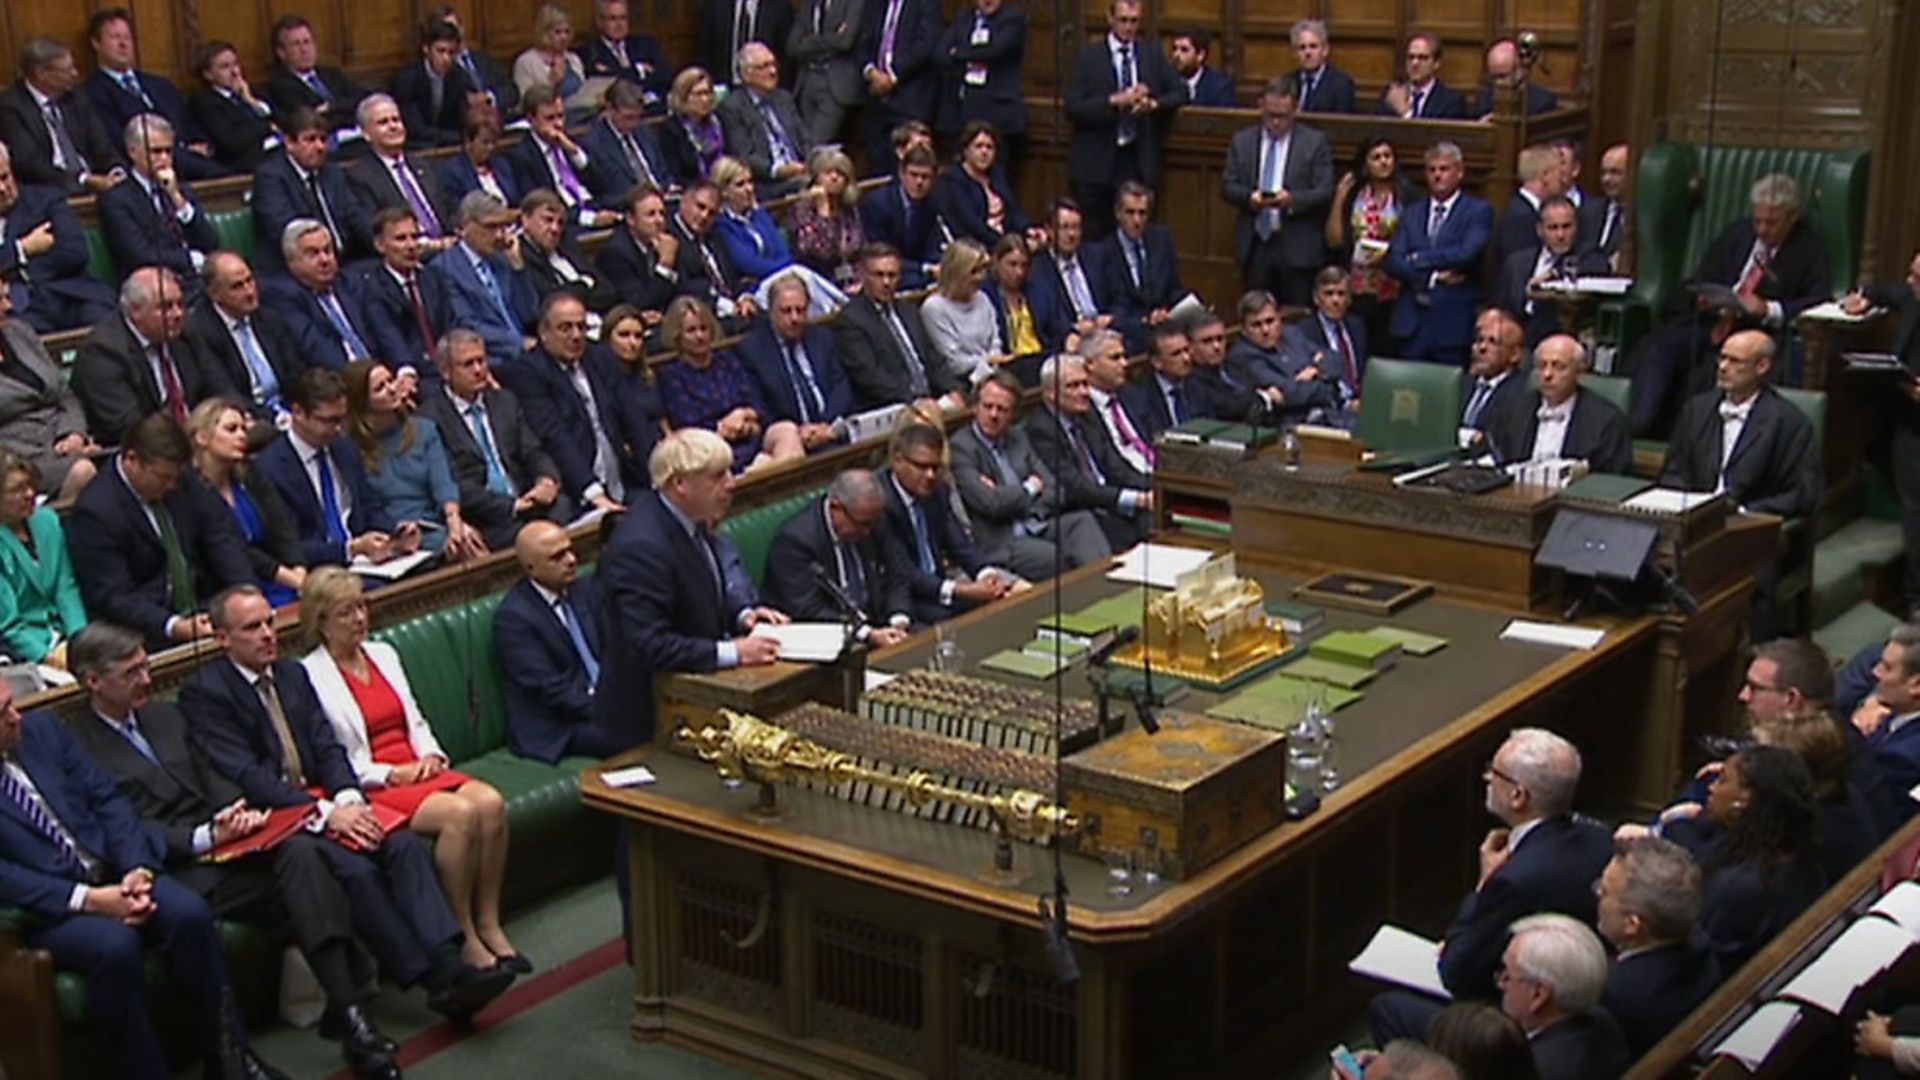 Boris Johnson speaks in the House of Commons. (PA Wire/PA Images) - Credit: PA Wire/PA Images